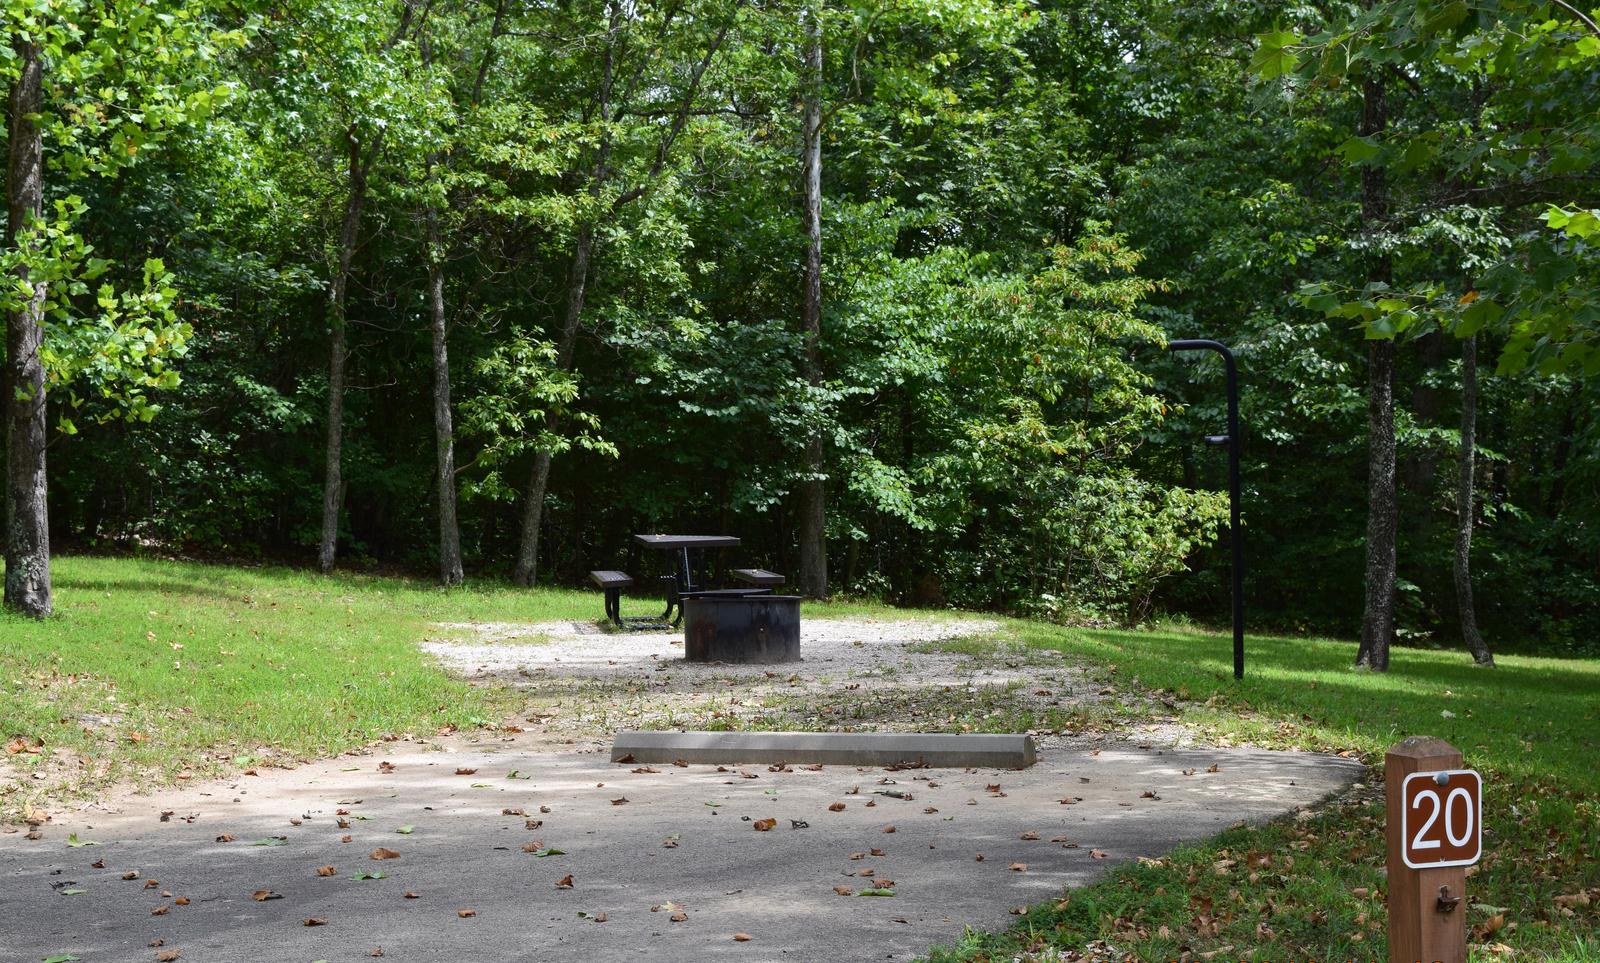 Campsite 20 showing parking spur, picnic table, lantern post and fire ringCampsite 20